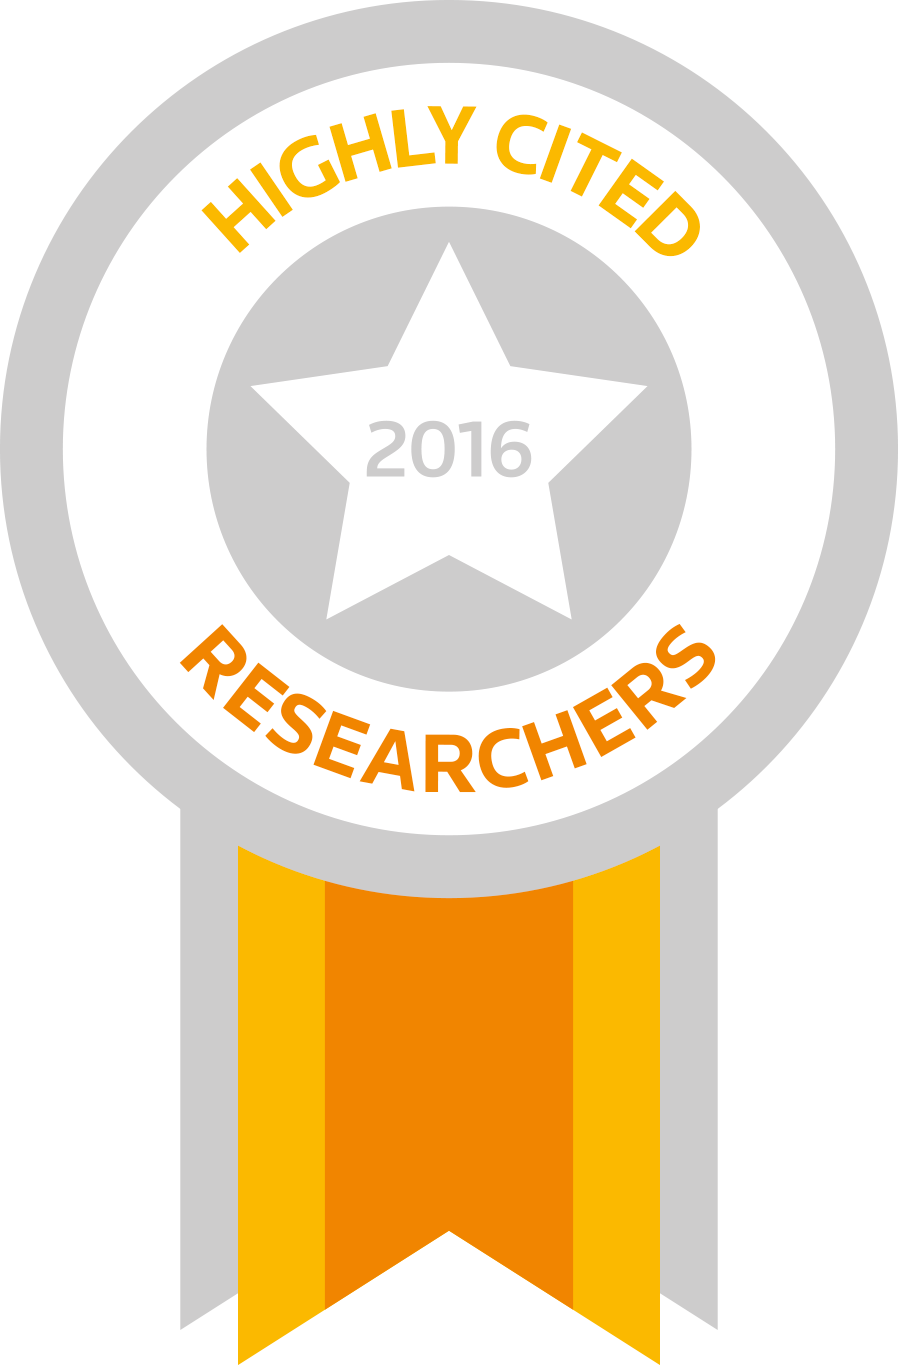 A 2016 Highly Cited Researcher